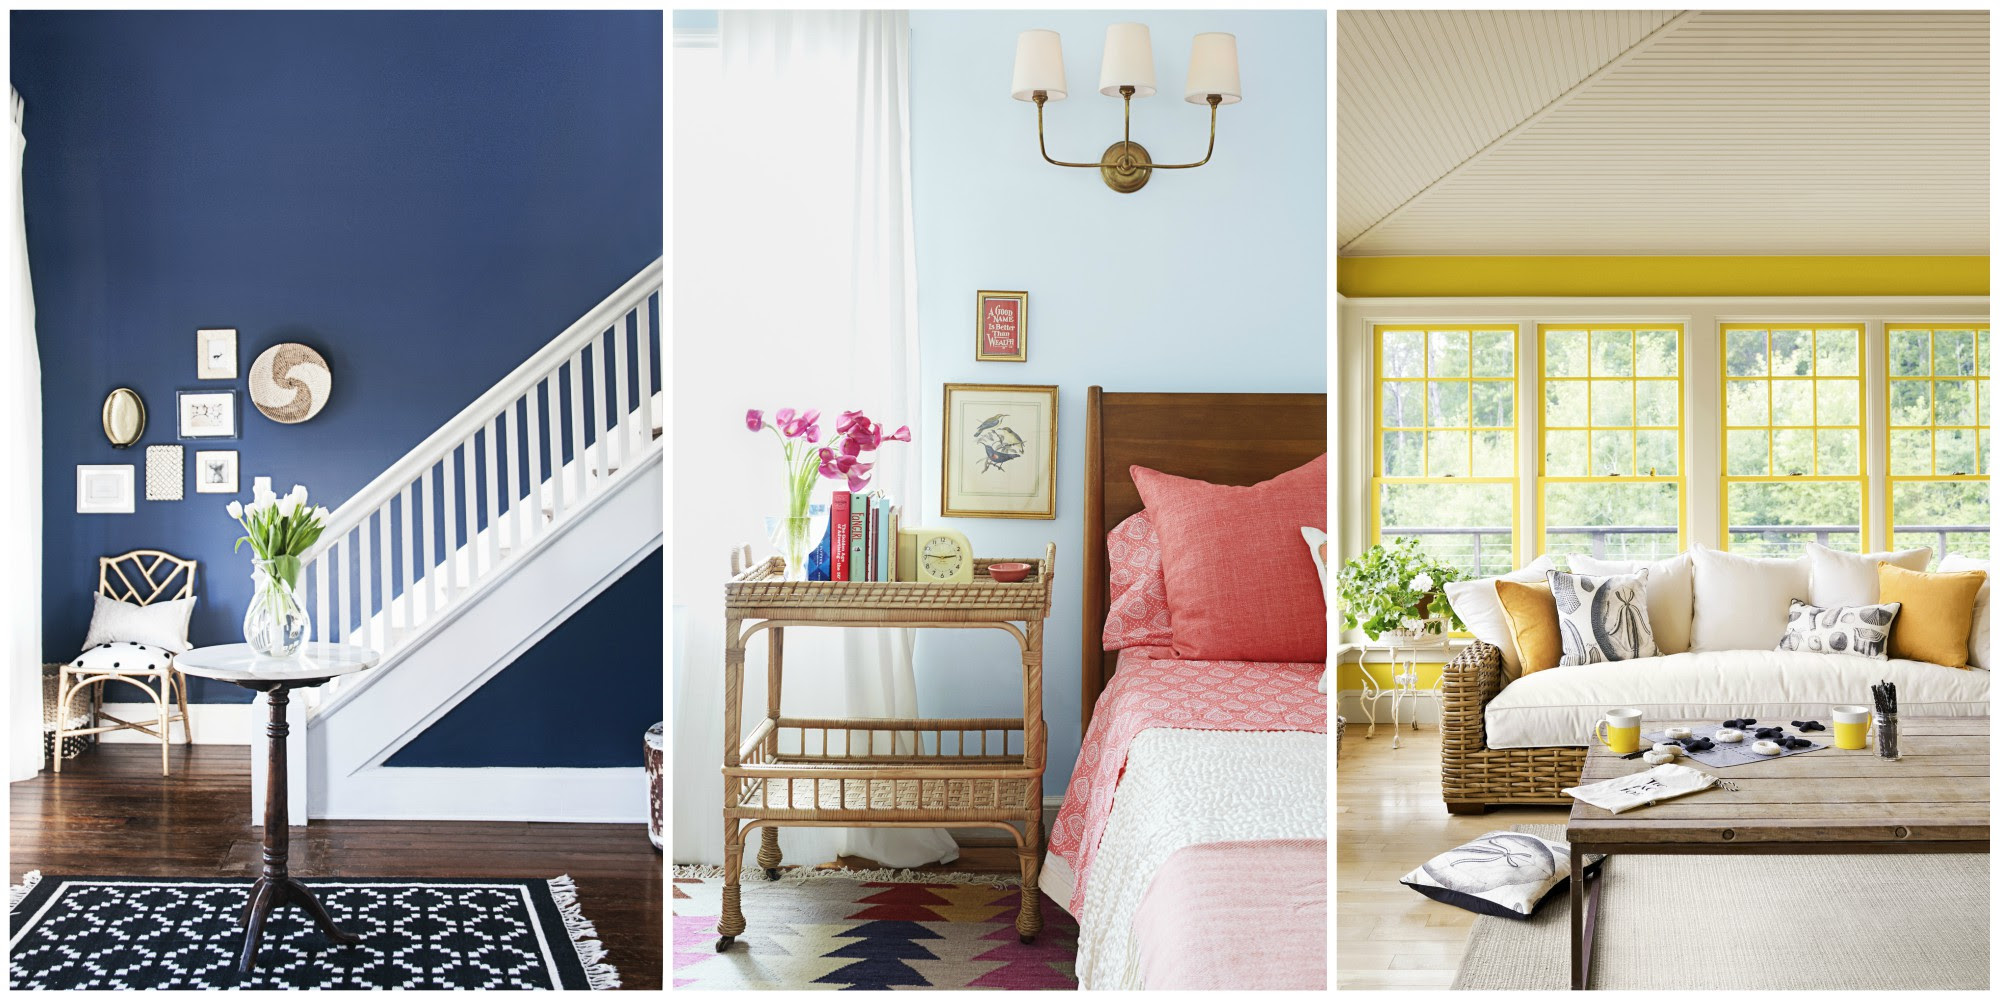 12 Best Interior Paint Colors - Top Wall Color Ideas for ...